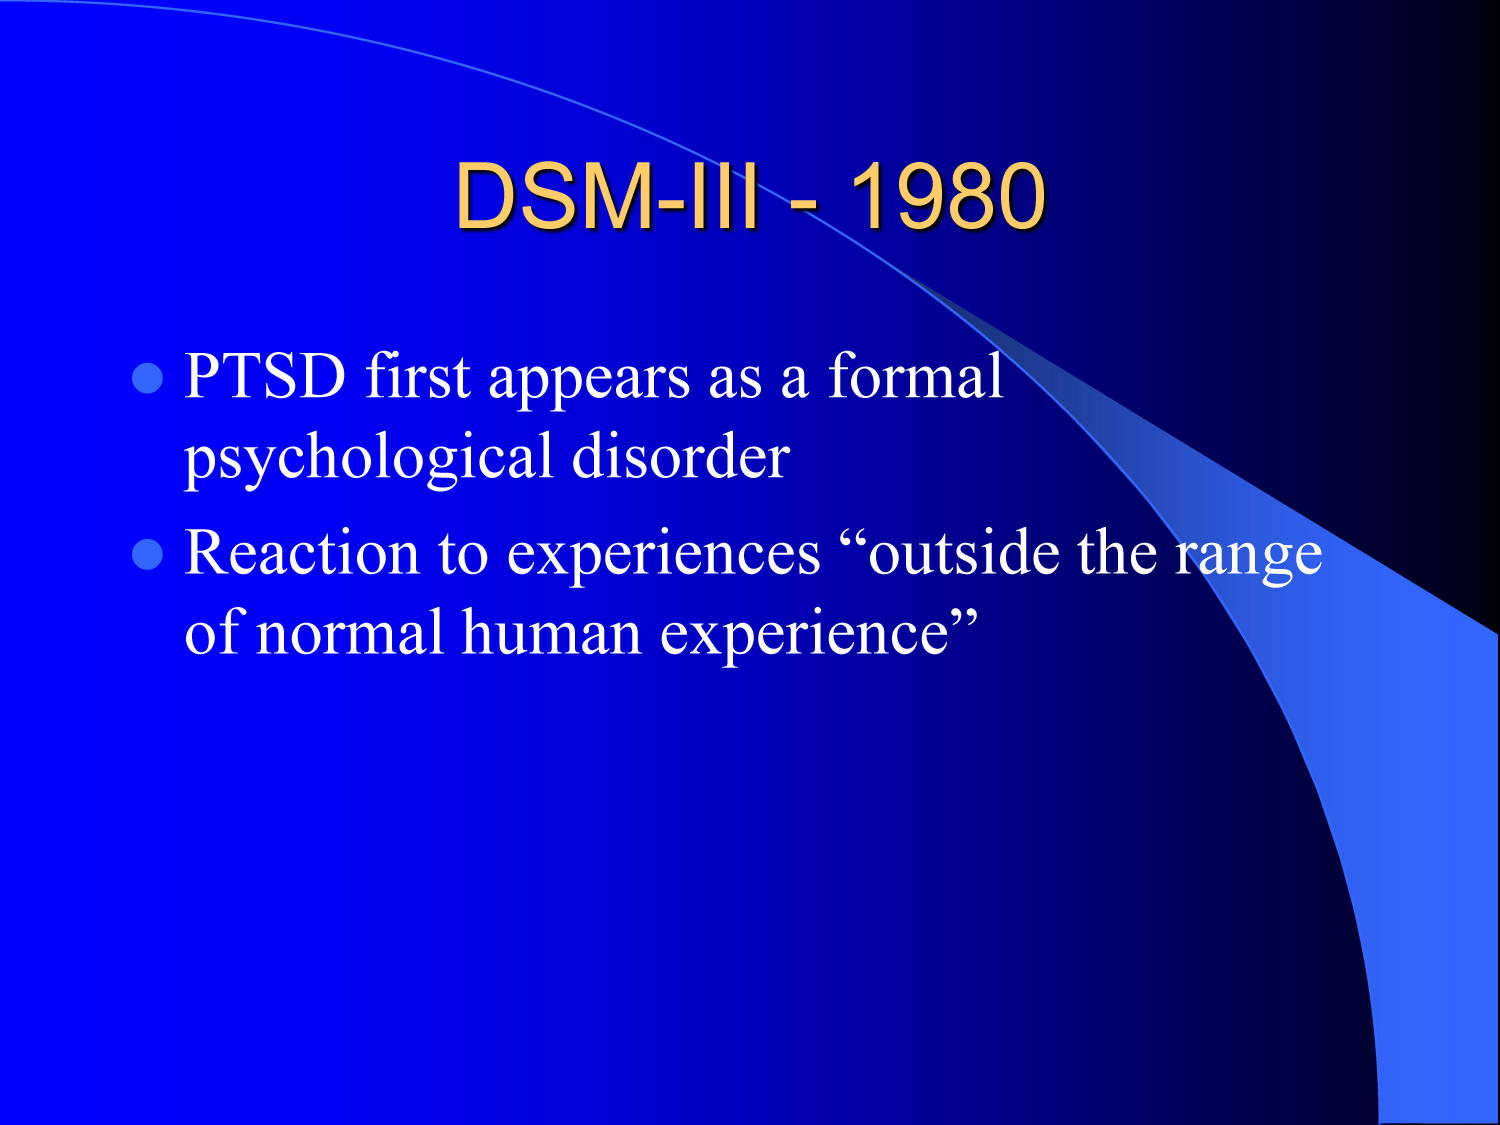 Posttraumatic Stress Disorder (PTSD): What is it and what causes it?                                                                                                      [Sequence #]: 6 of 17